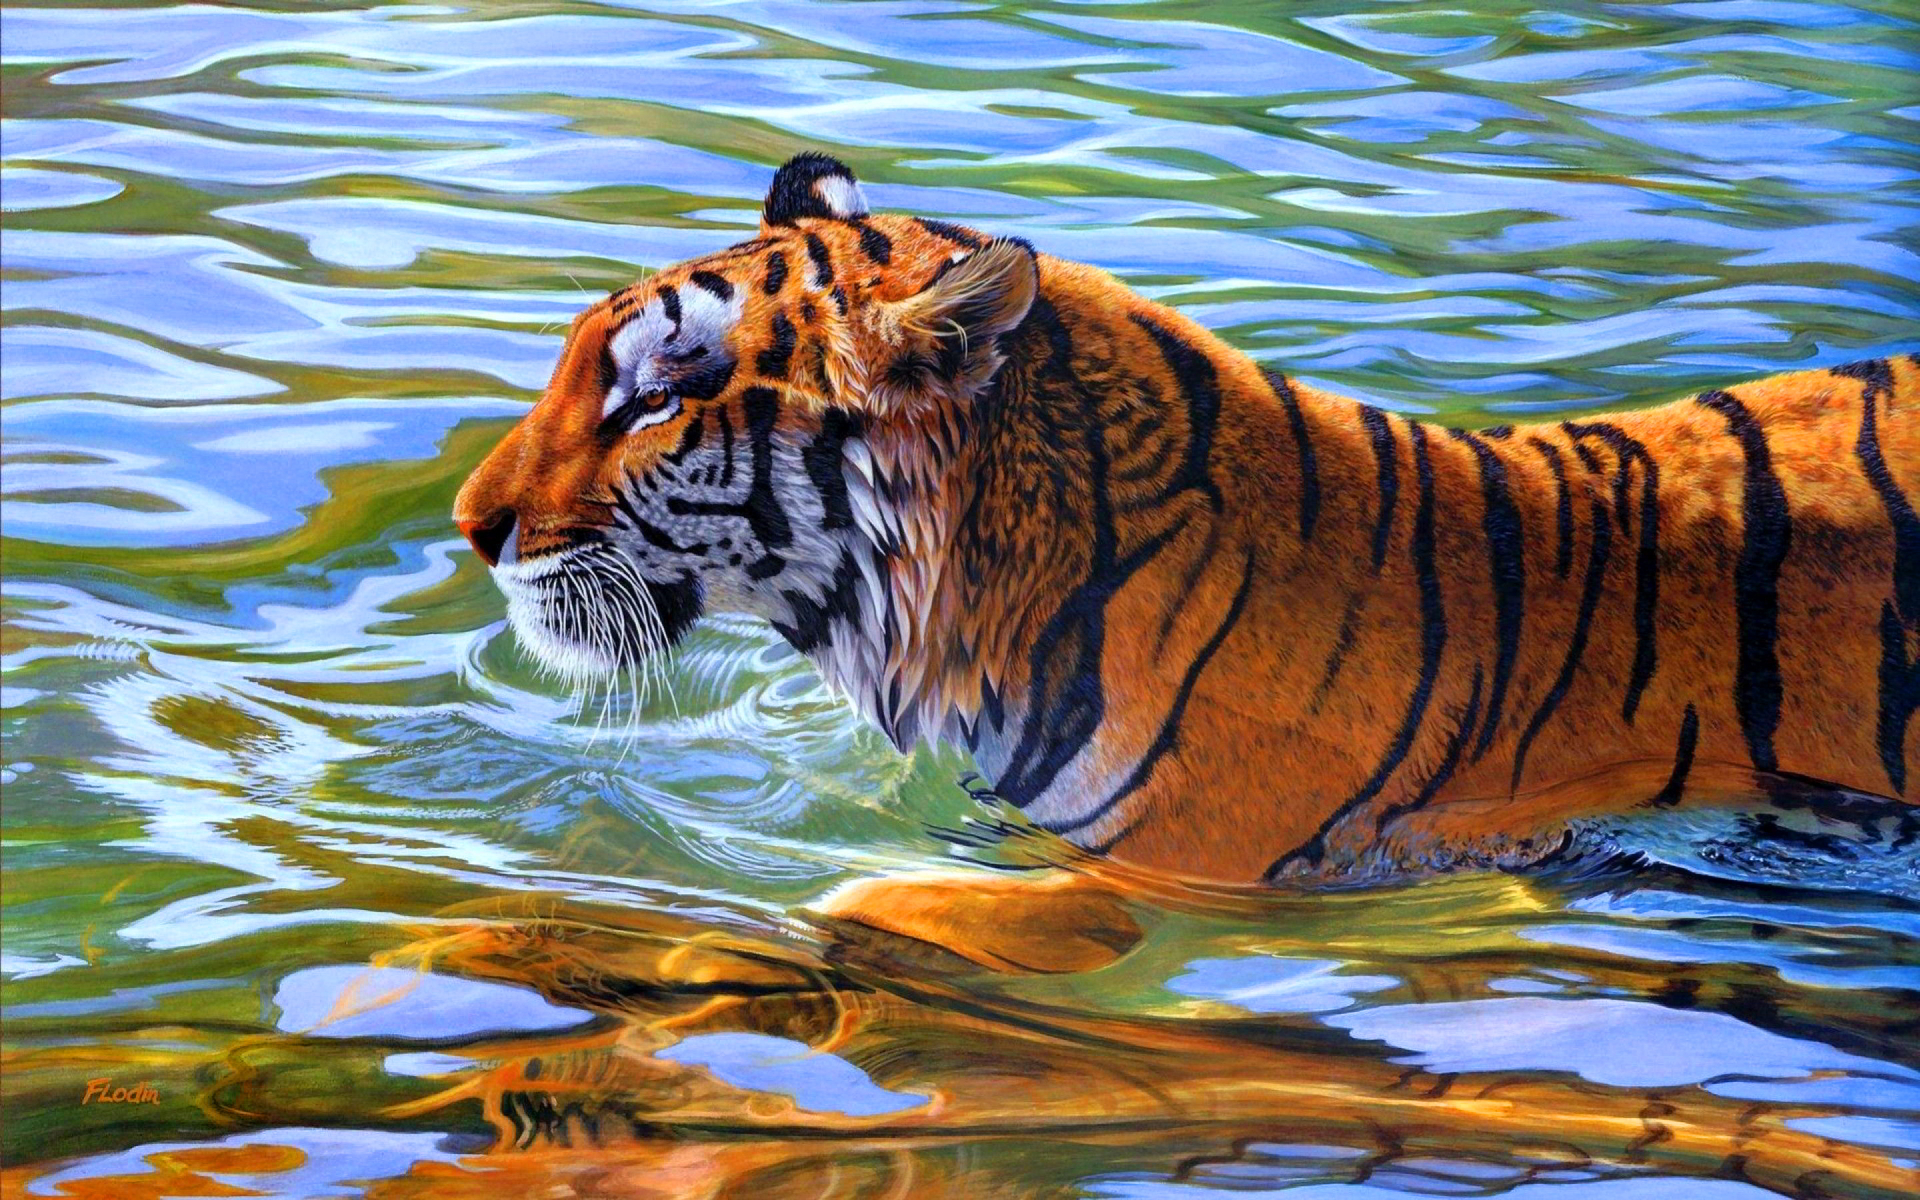 Tiger in water 1